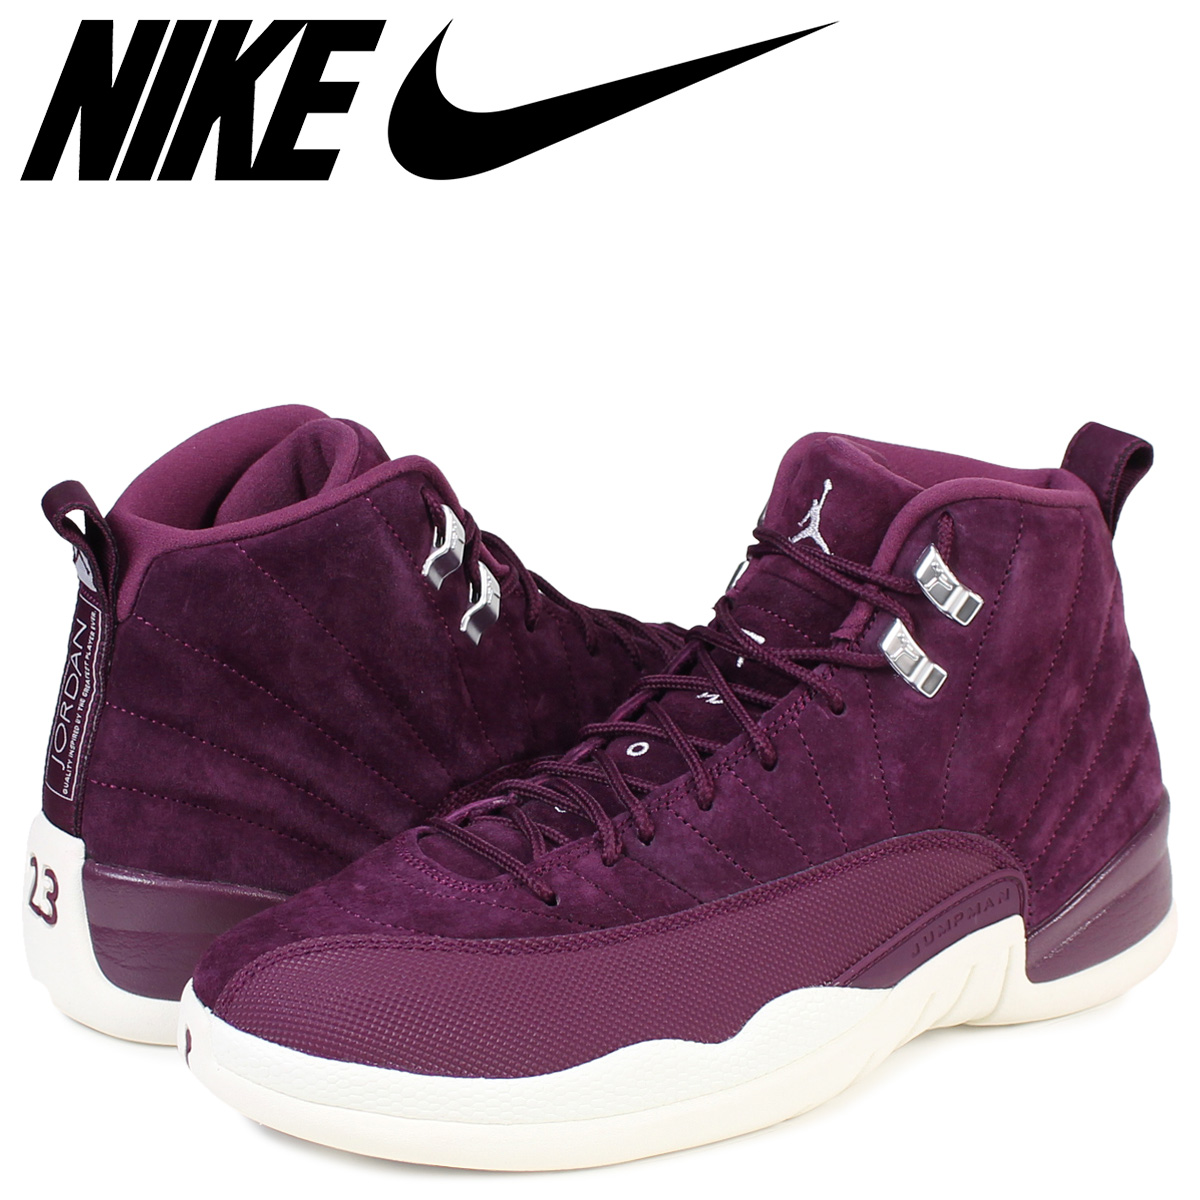 great fit get cheap uk availability NIKE AIR JORDAN 12 RETRO Nike Air Jordan 12 nostalgic sneakers 130,690-617  men's shoes Bordeaux [1711]